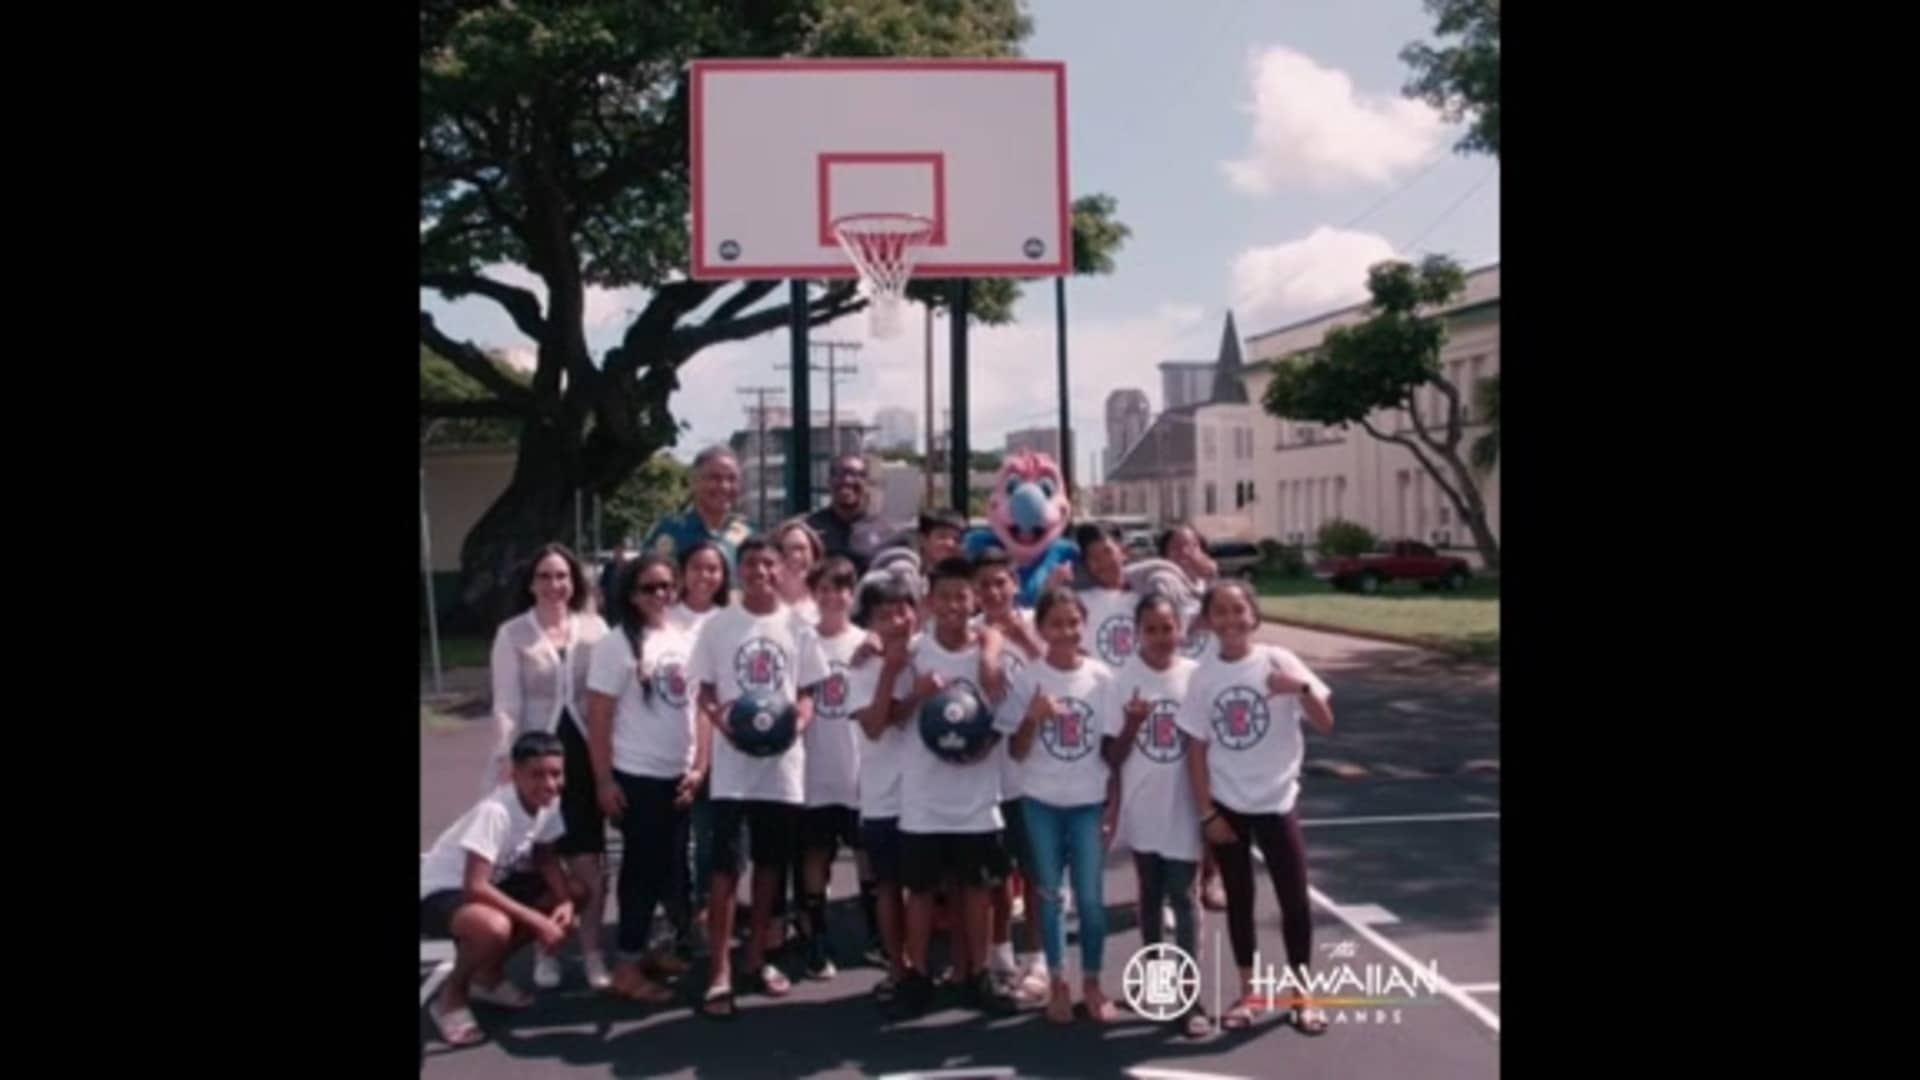 LA Clippers Visit Hawaii's Central Middle School